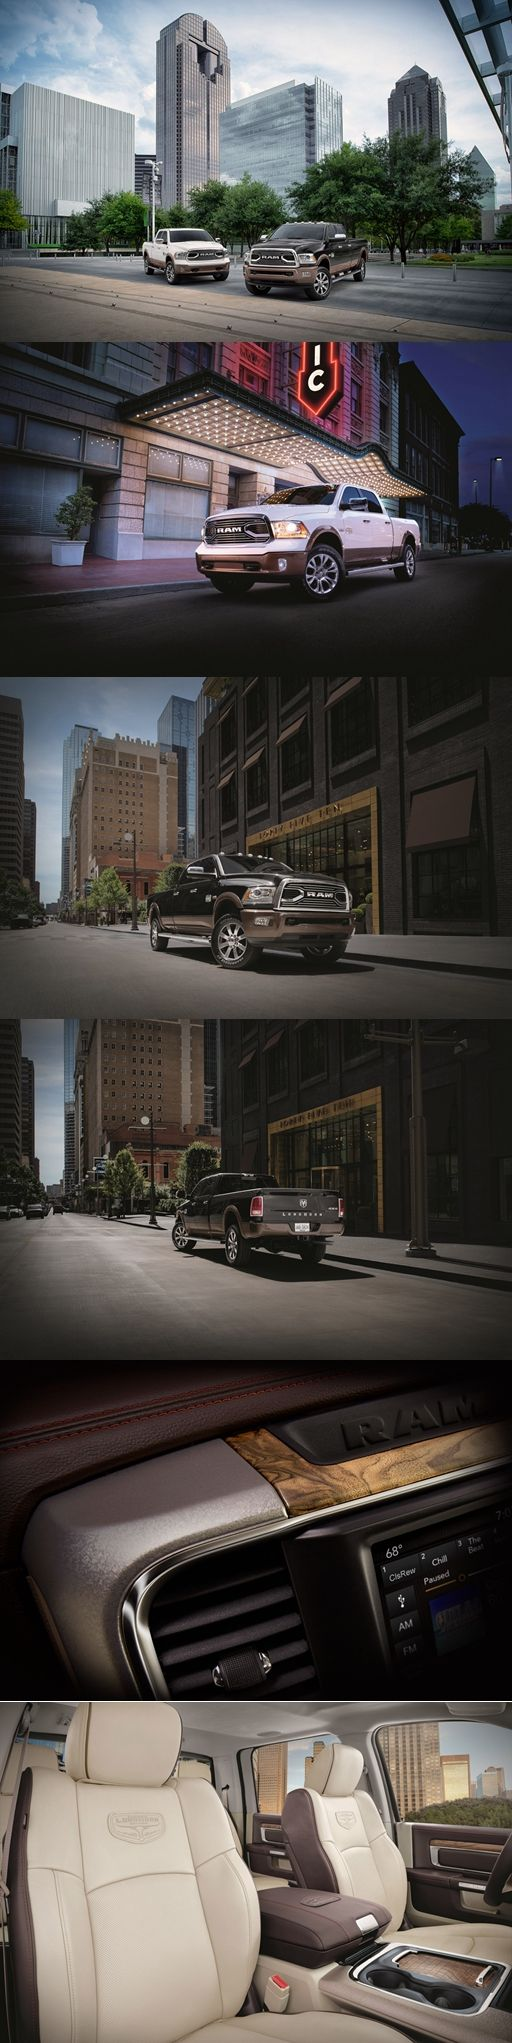 2018 #Dodge #Ram Laramie Longhorn Southfork Edition Is For #Texans Only. This special truck is jam-packed with luxury and #technology to make traversing the long hauls of Texas' highways more bearable, but for #Texas only.